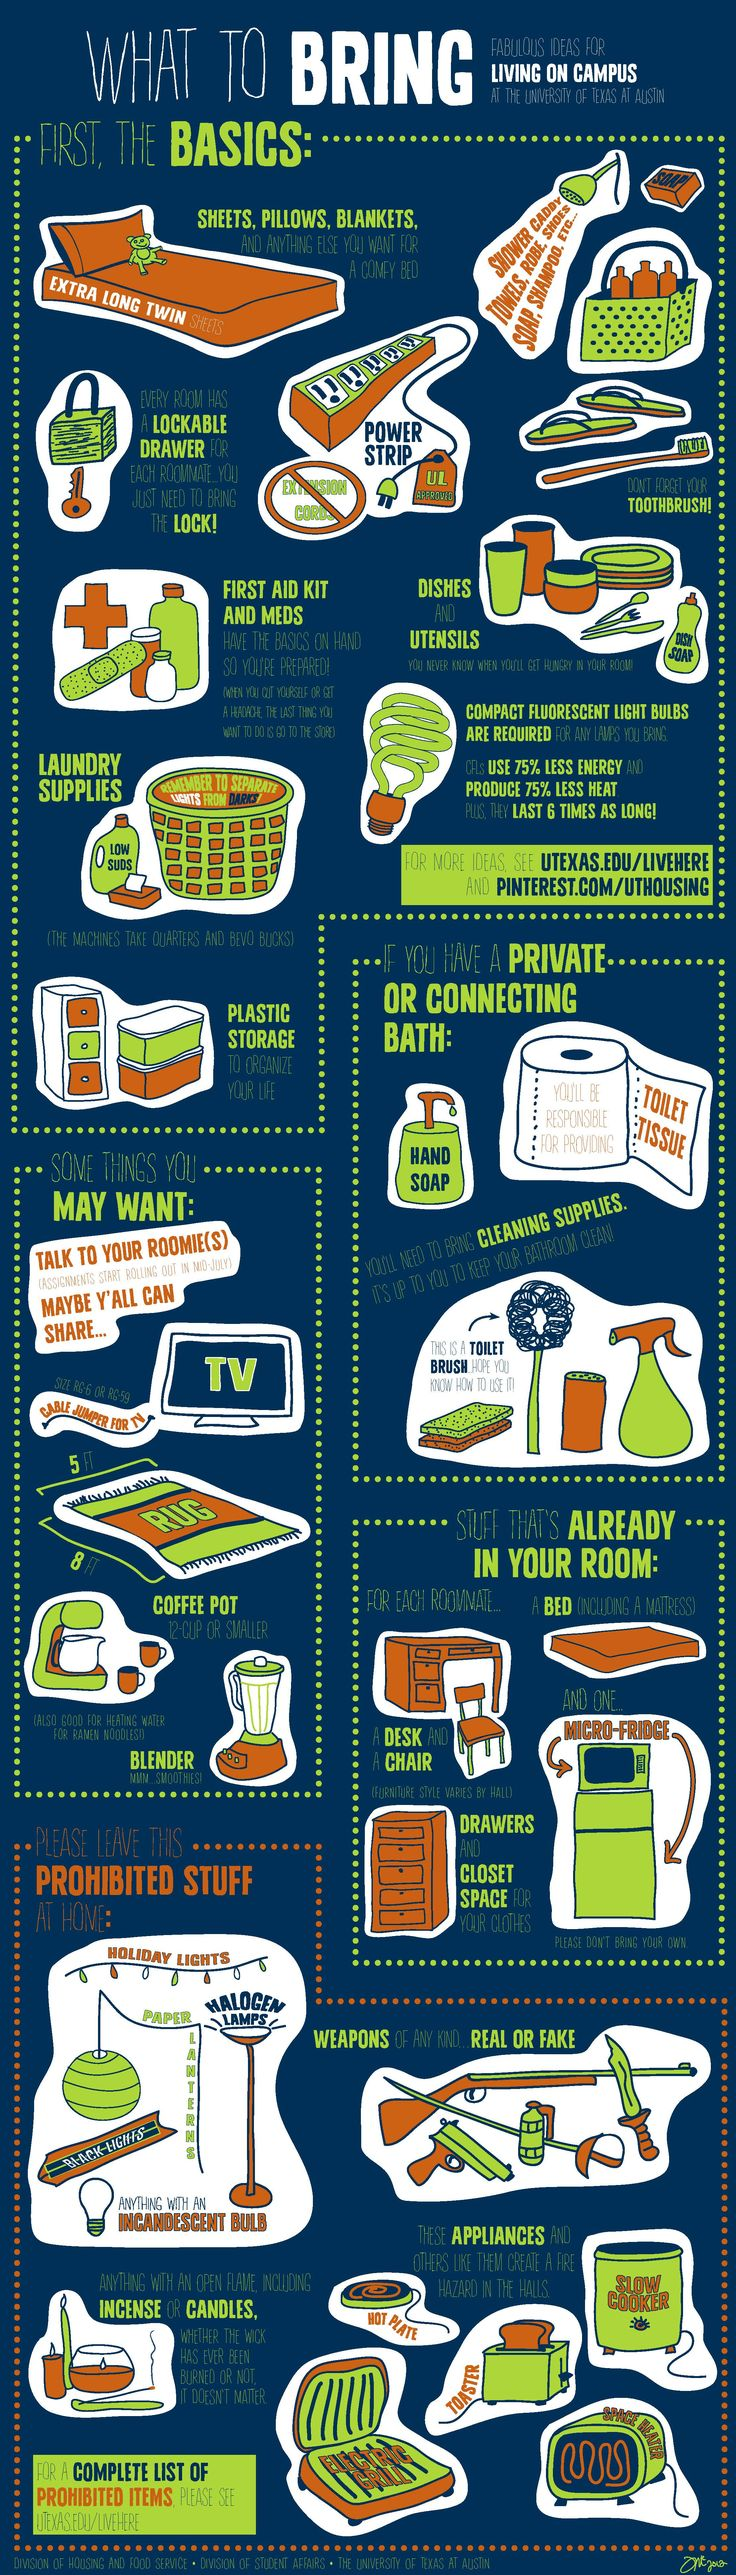 What are you going to bring to your Residence Hall at UT Austin?